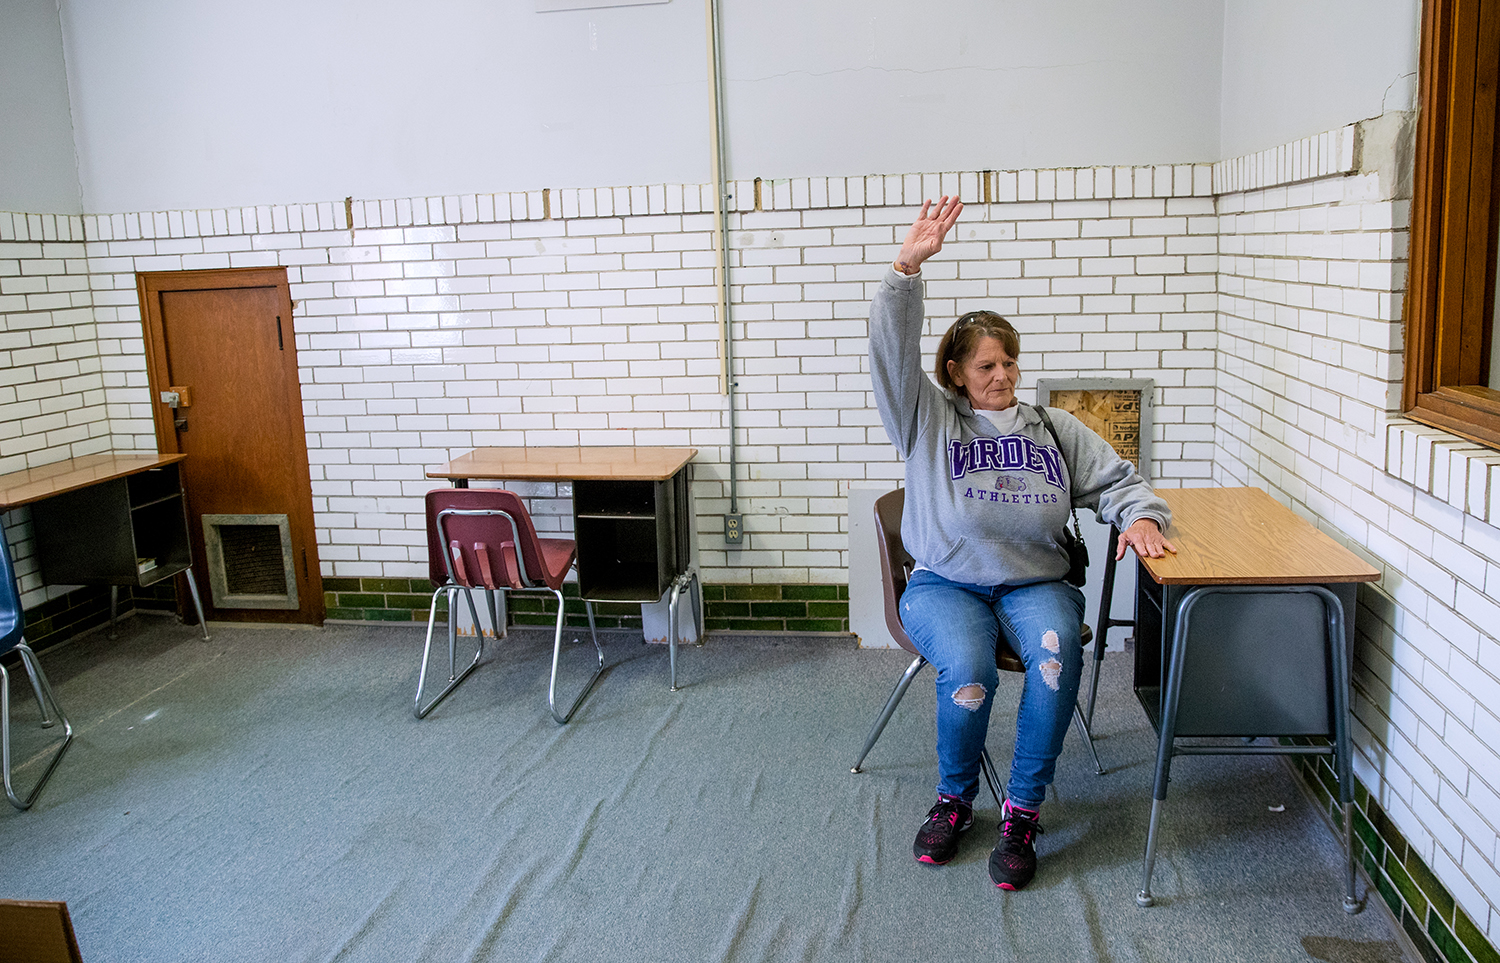 Sheila Crays raises her hand while sitting in a desk in an empty classroom at Virden Community High School during an open house Saturday, April 13, 2019. The old school buildings are being razed to make way for new North Mac High School facilities on the same property. Crays and her 11 siblings attended school in Virden. [Ted Schurter/The State Journal-Register]